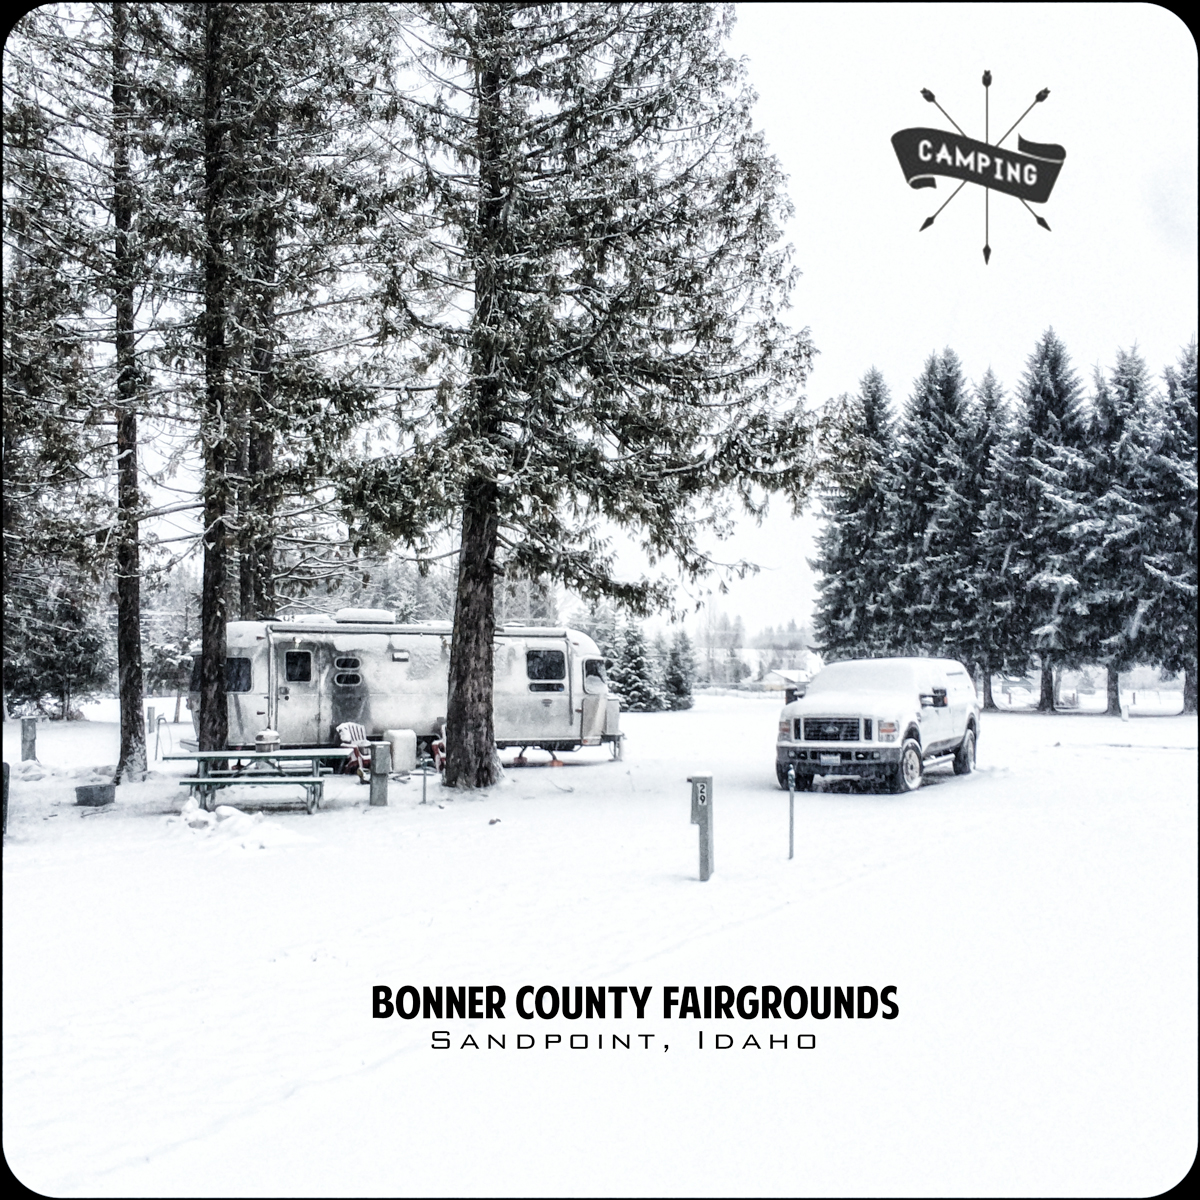 The Bonner County Fairgrounds in Sandpoint, ID